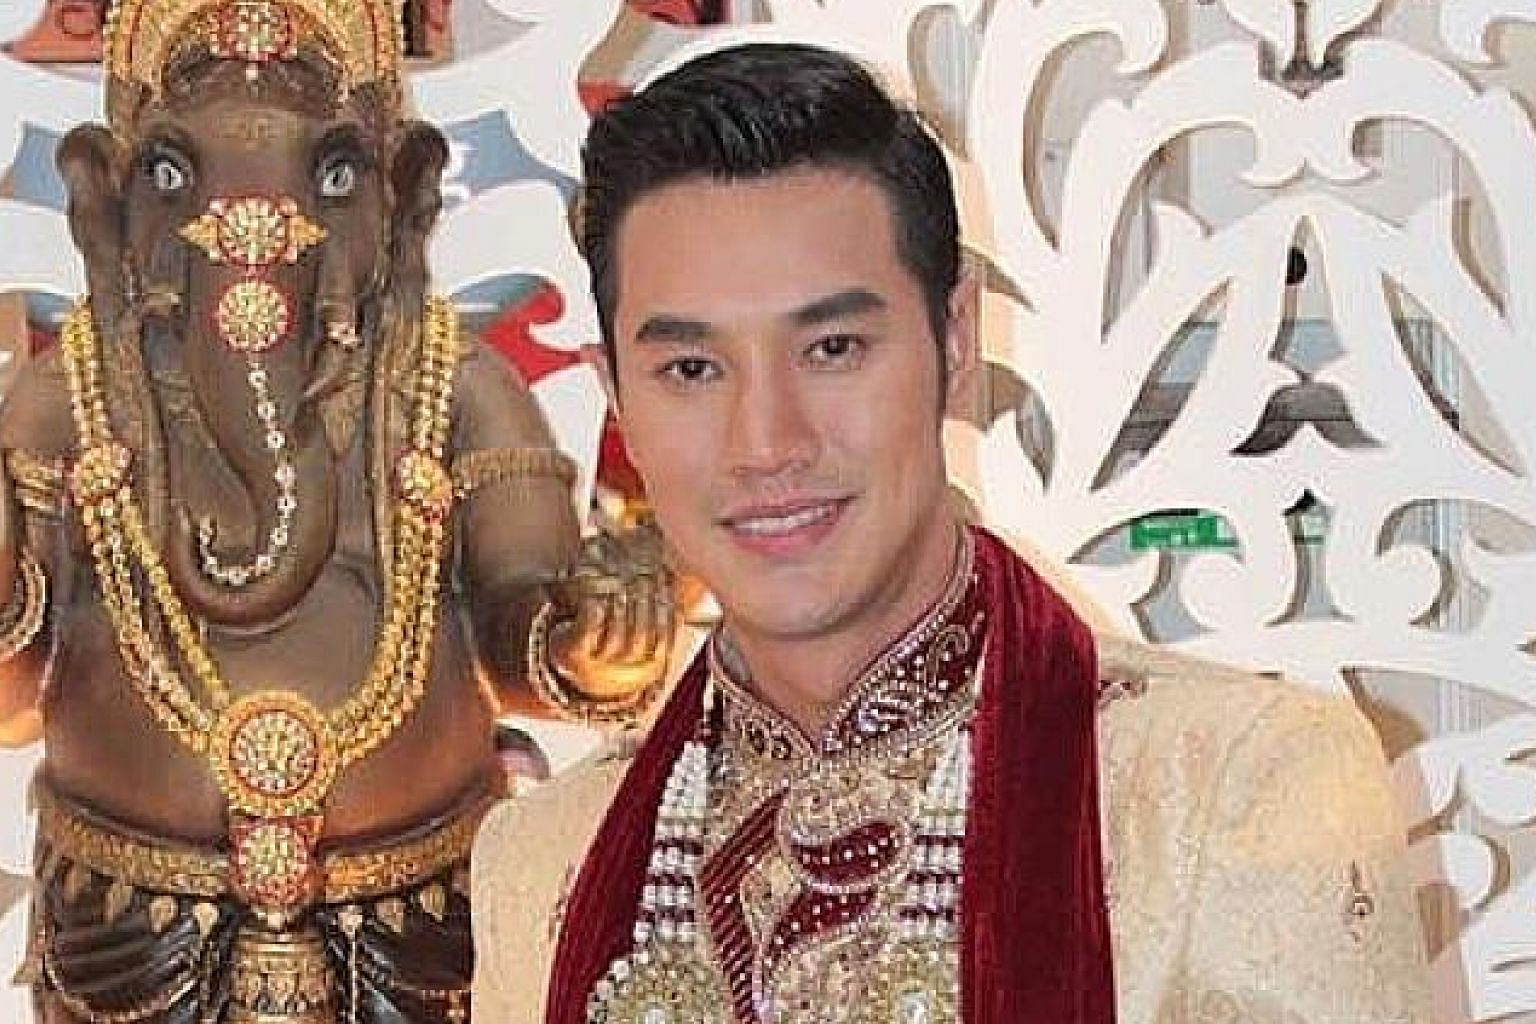 """Thai model Pramthat """"Pram"""" Sinkang's family said doctors had identified a prospective donor in February, but he had changed his mind, and they could not find another donor match."""